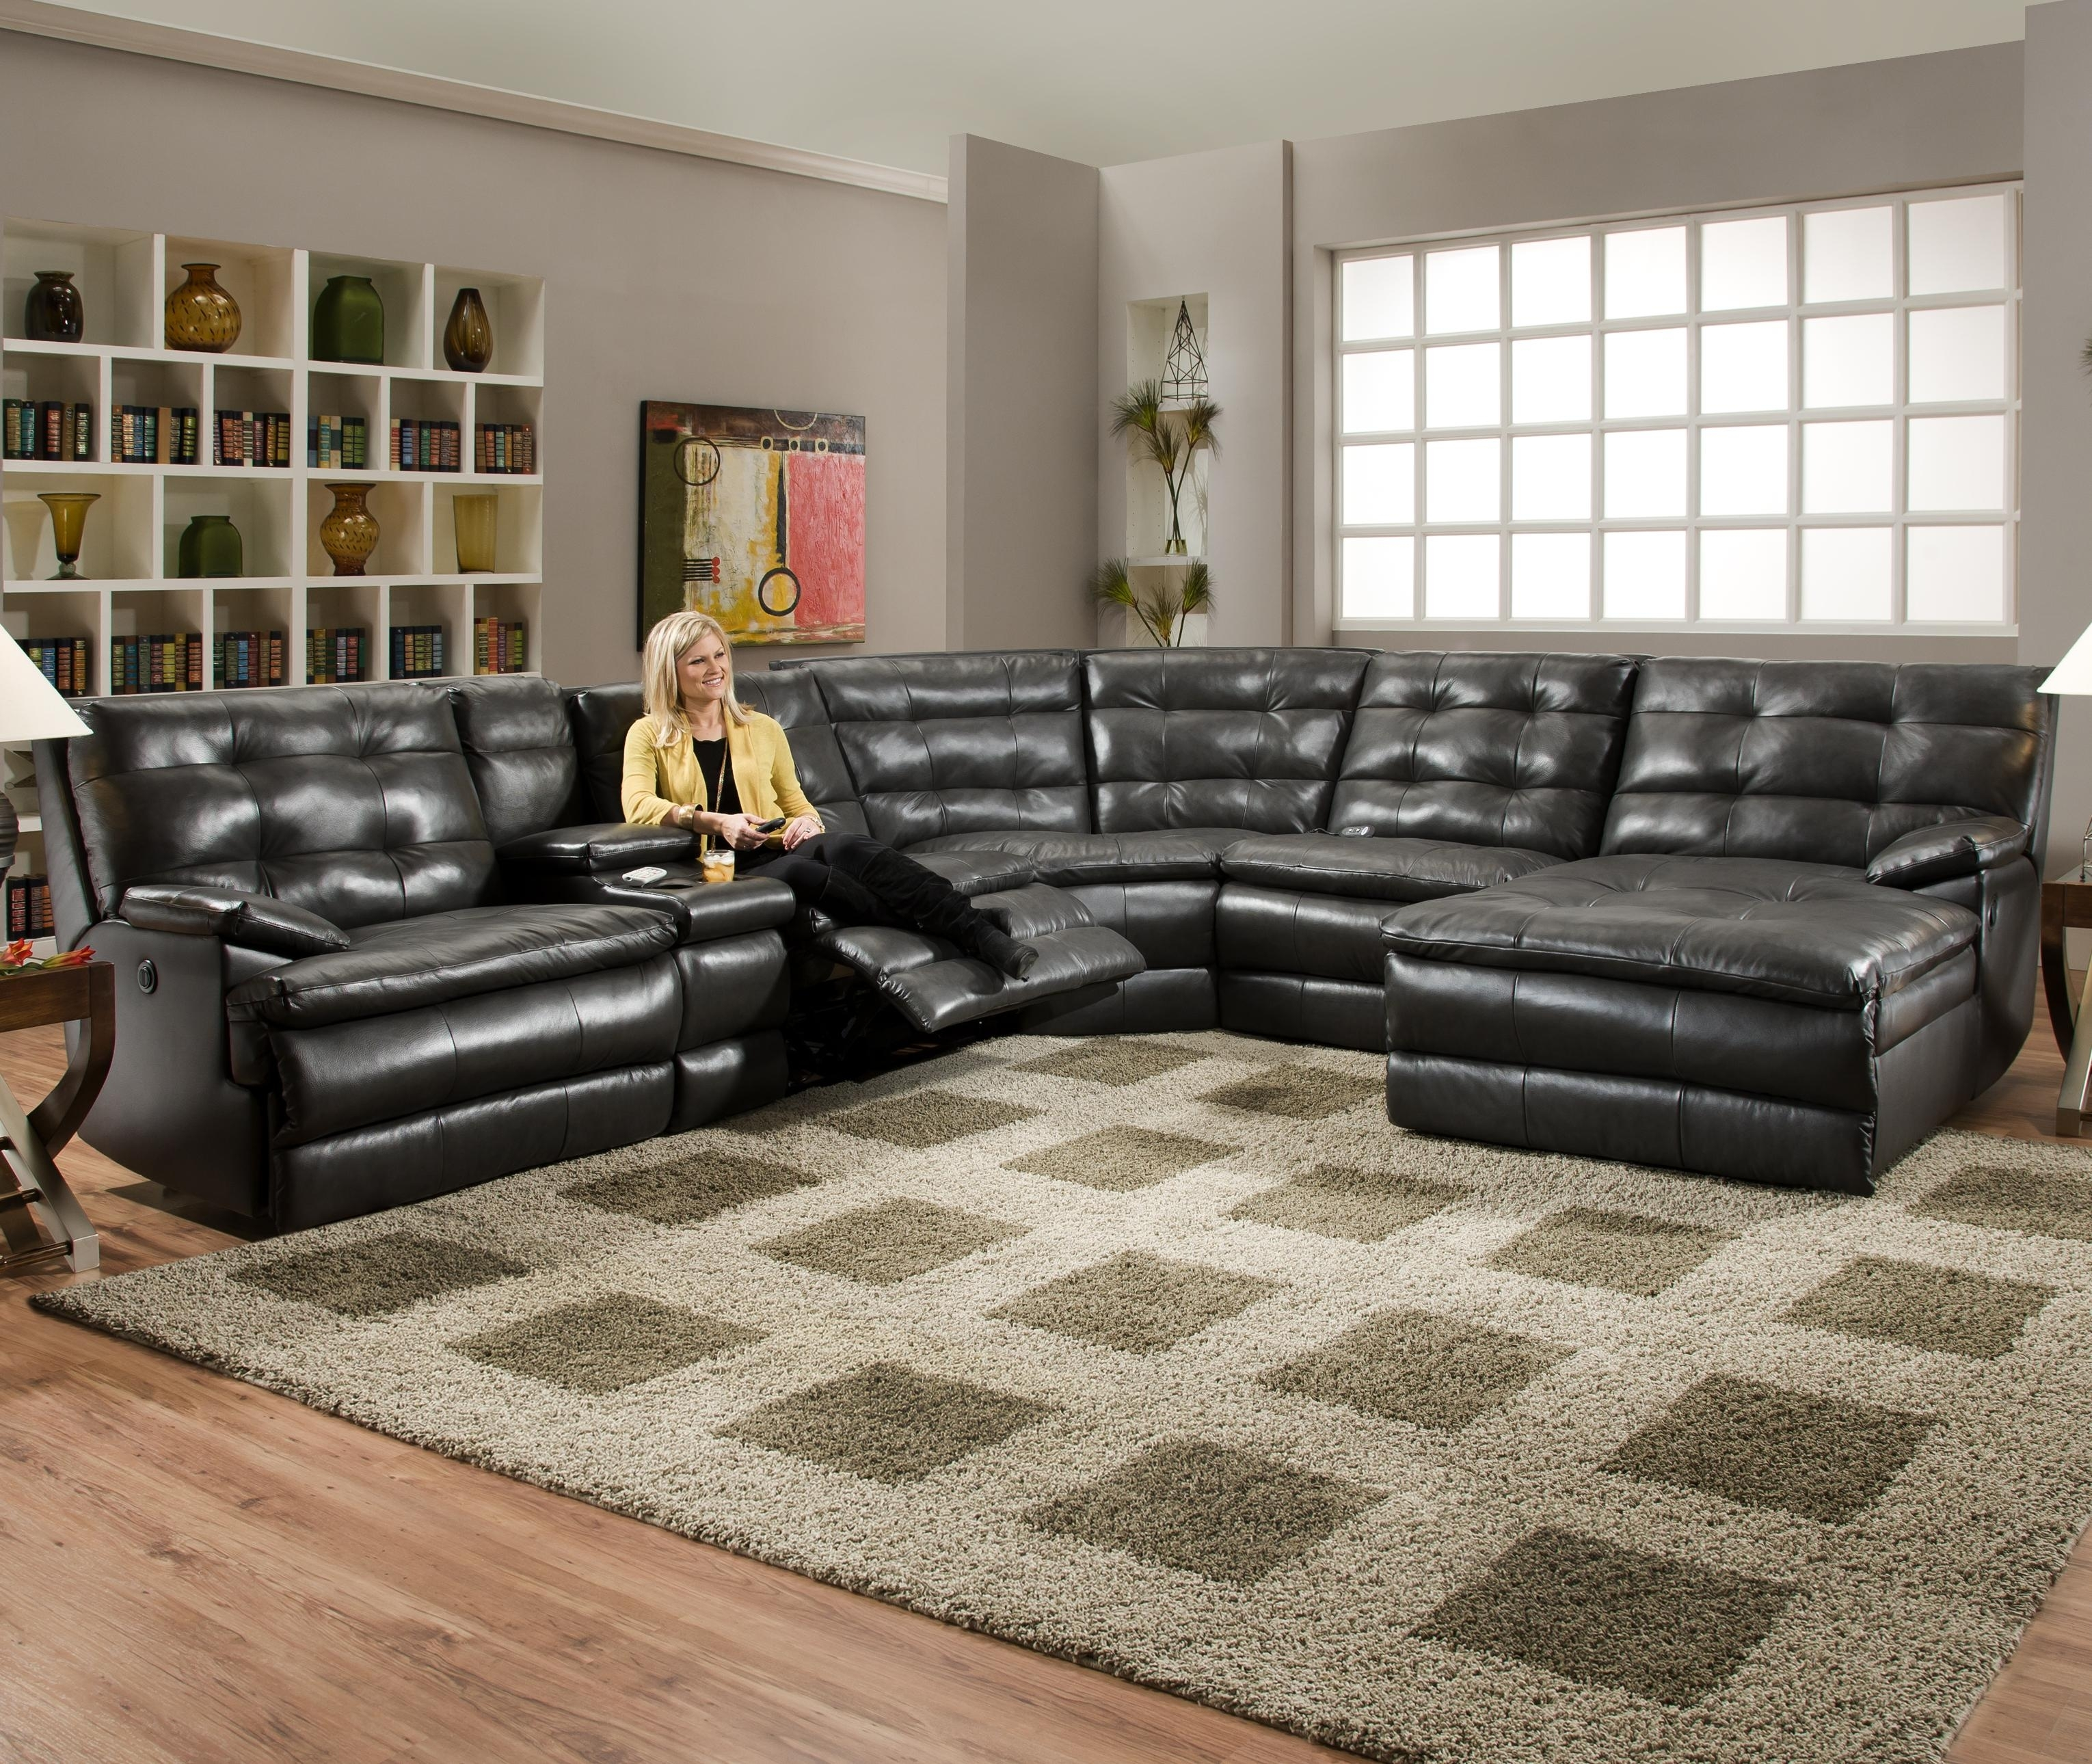 Luxurious Tufted Leather Sectional Sofa In Classy Black Color With Within Large Sectional Sofas (Image 6 of 10)